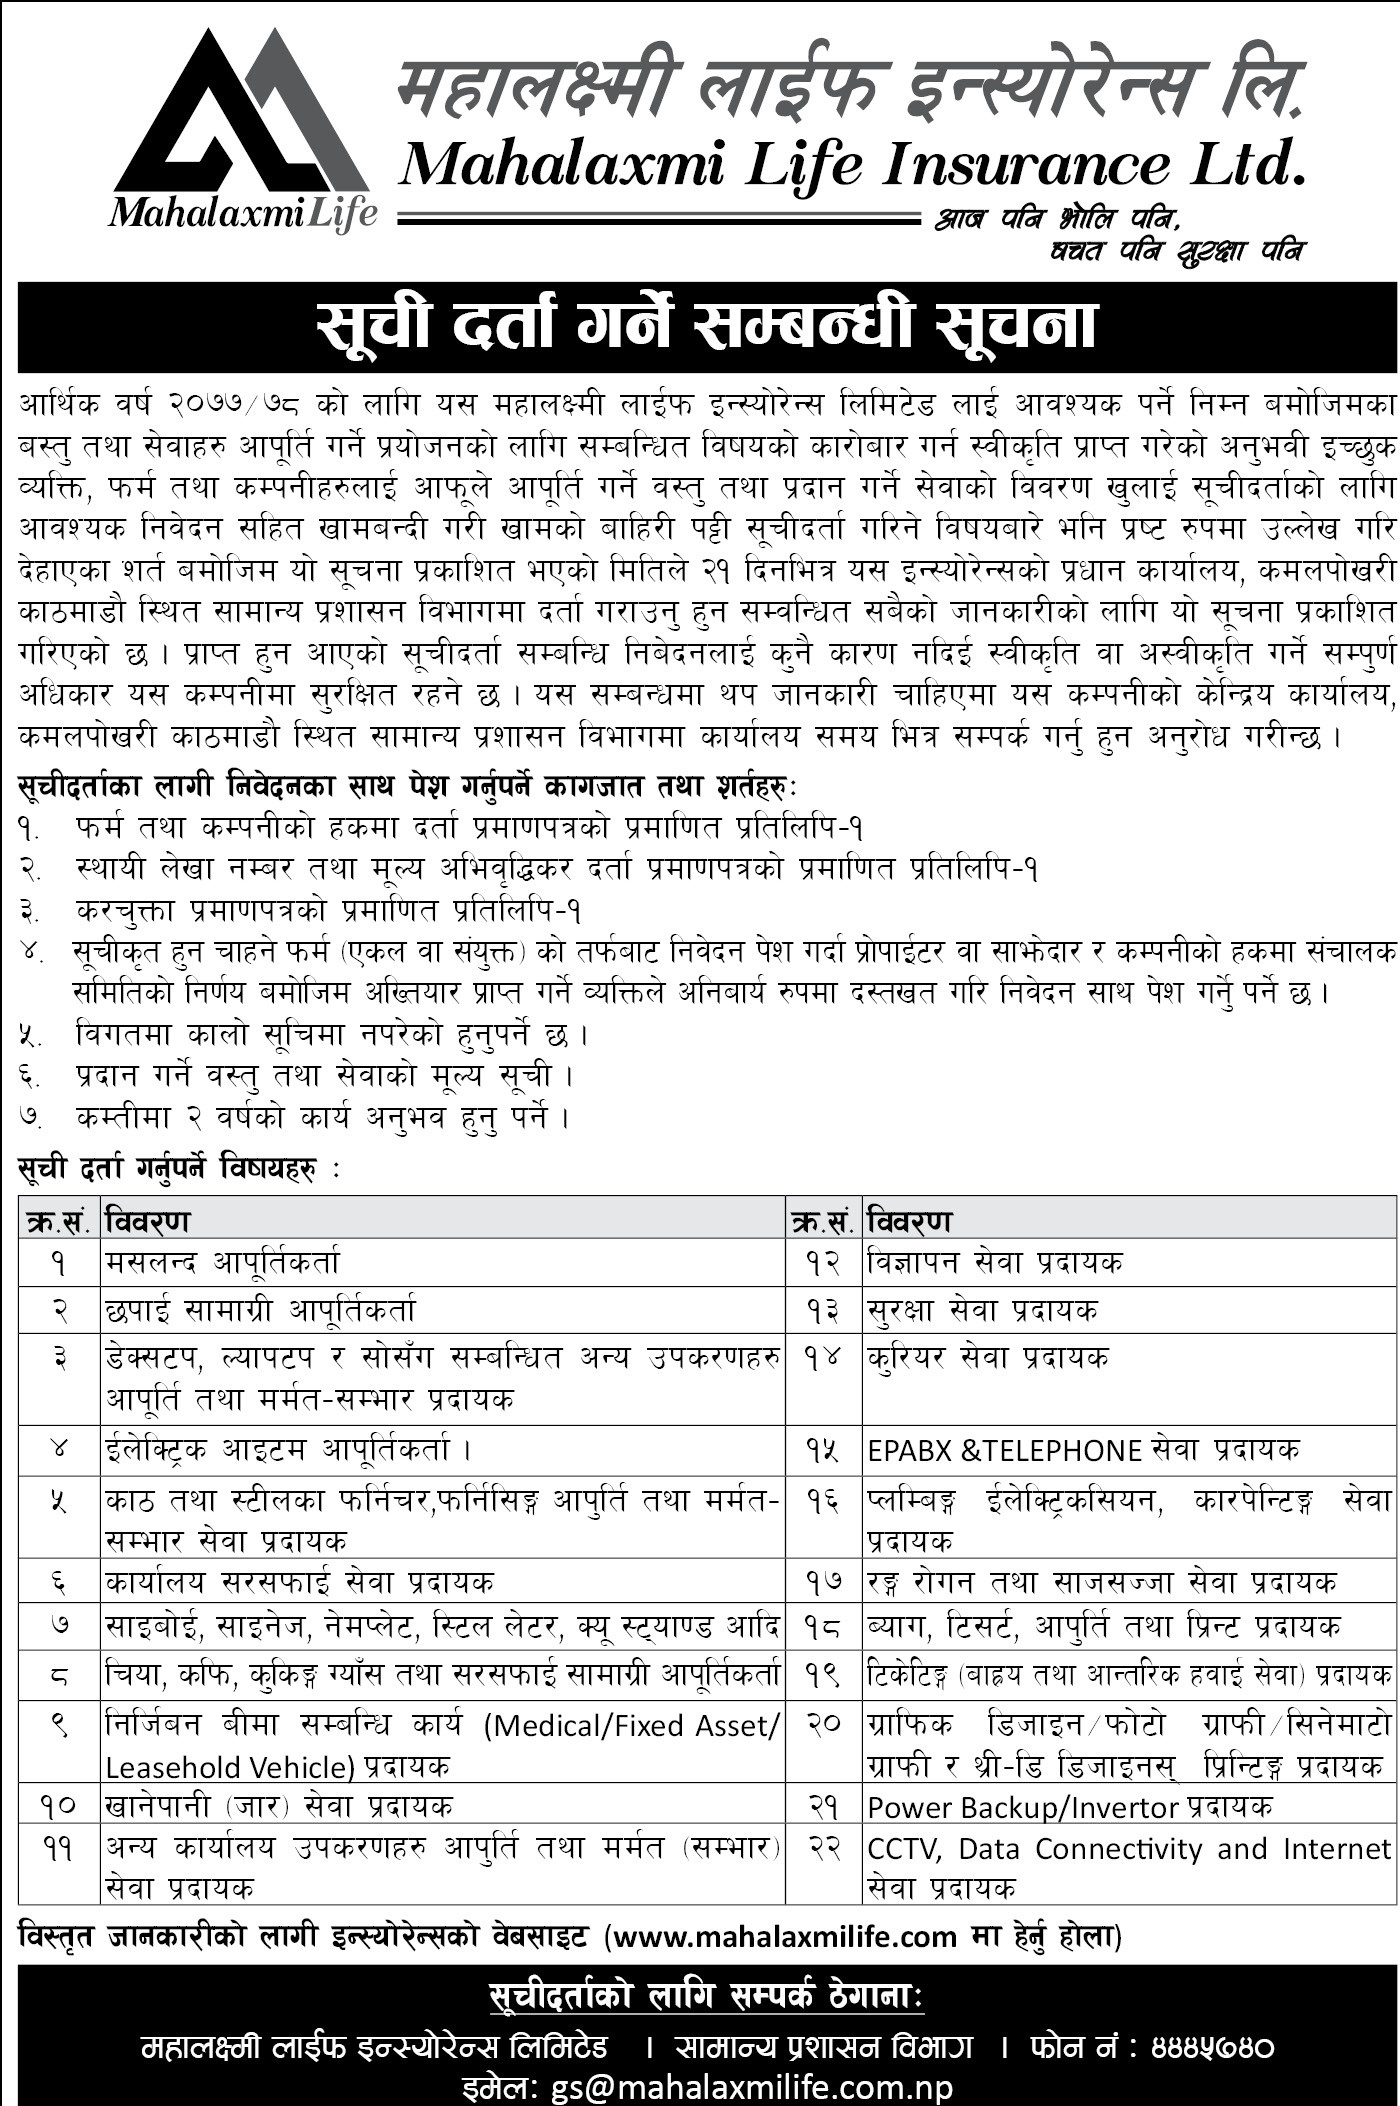 Tender Notice on Various Subject Matters